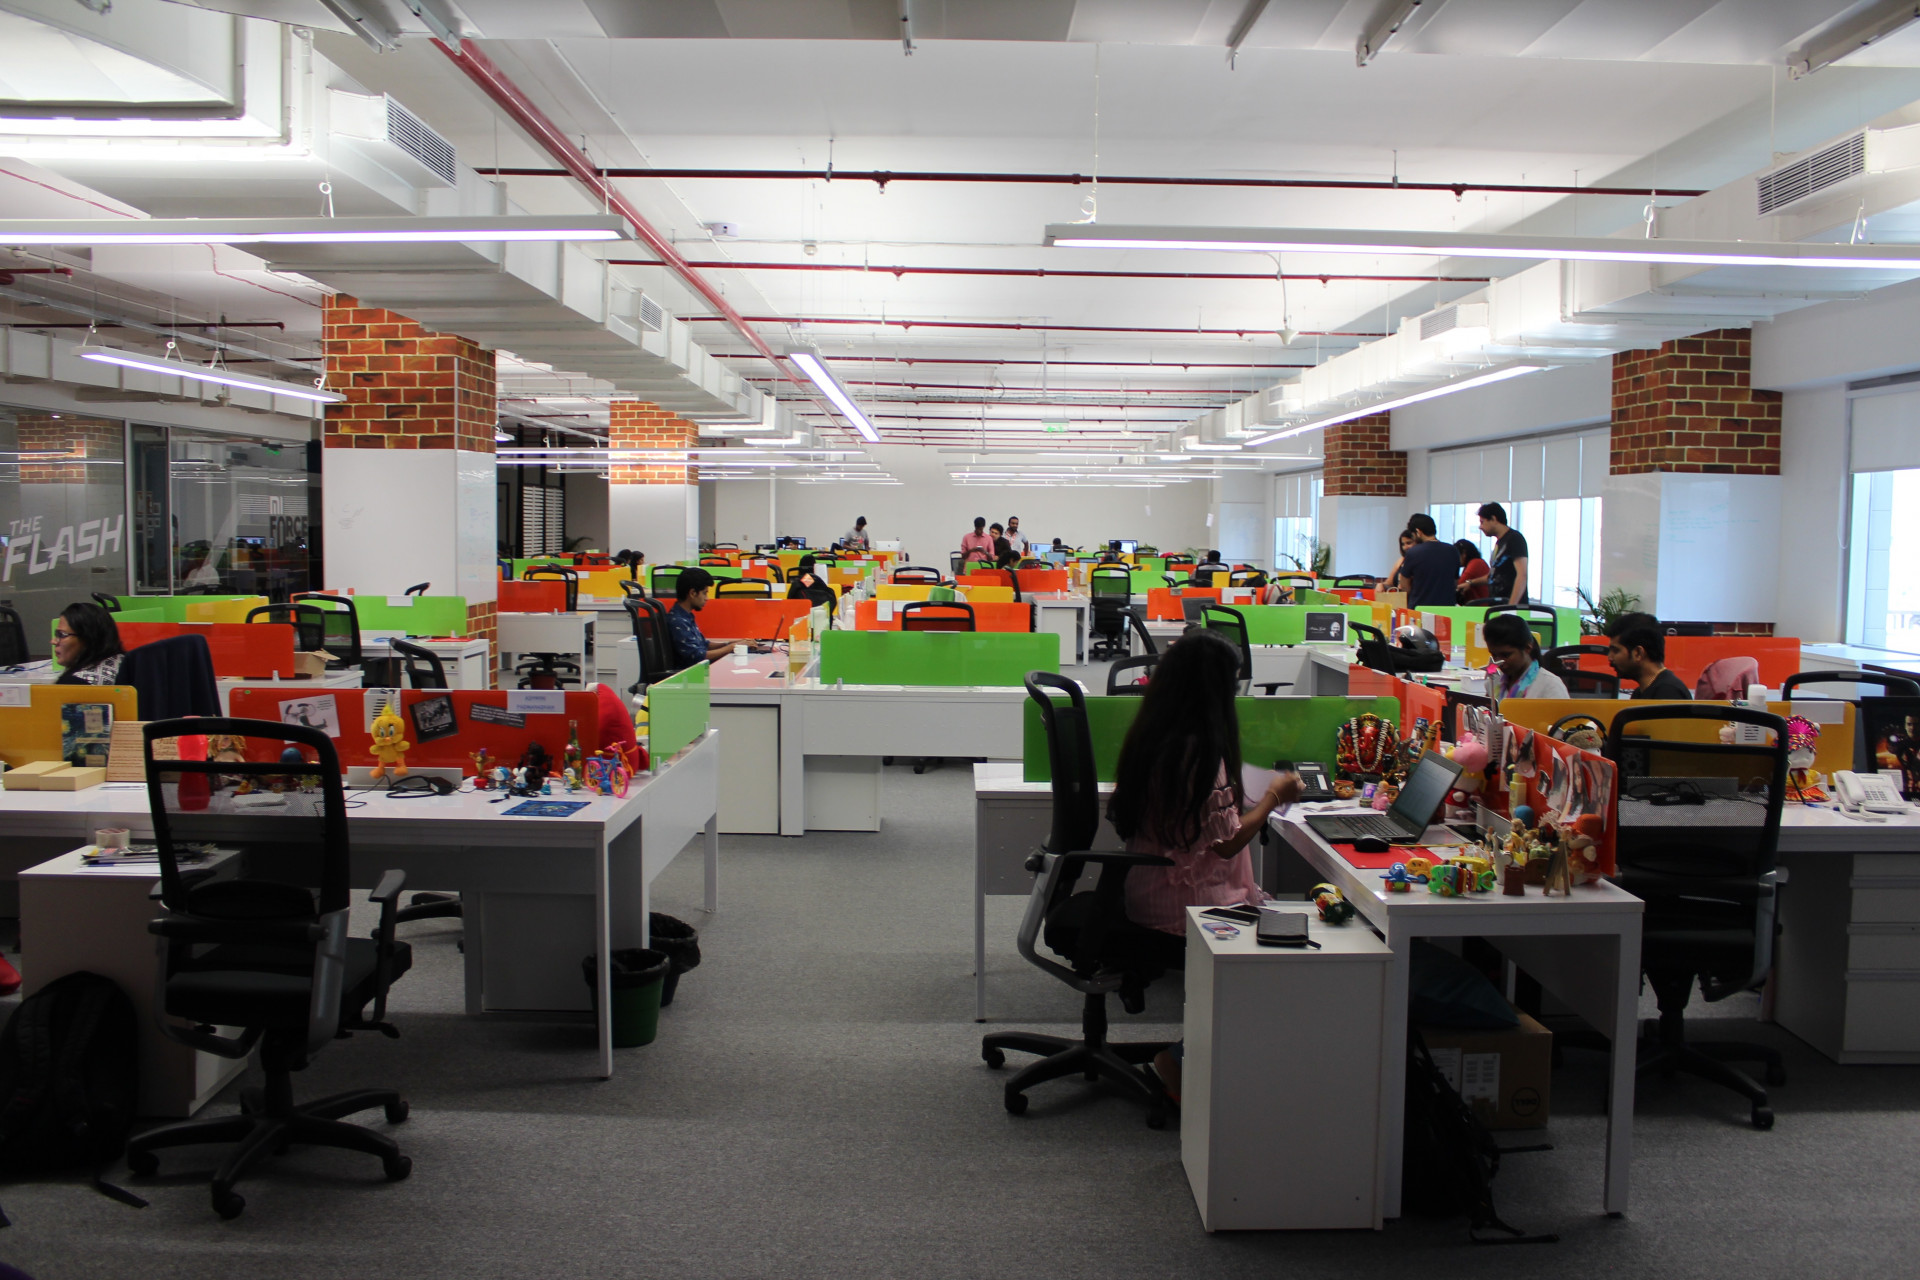 Xiaomi's Bangalore office (Image Credit: Xiaomi)